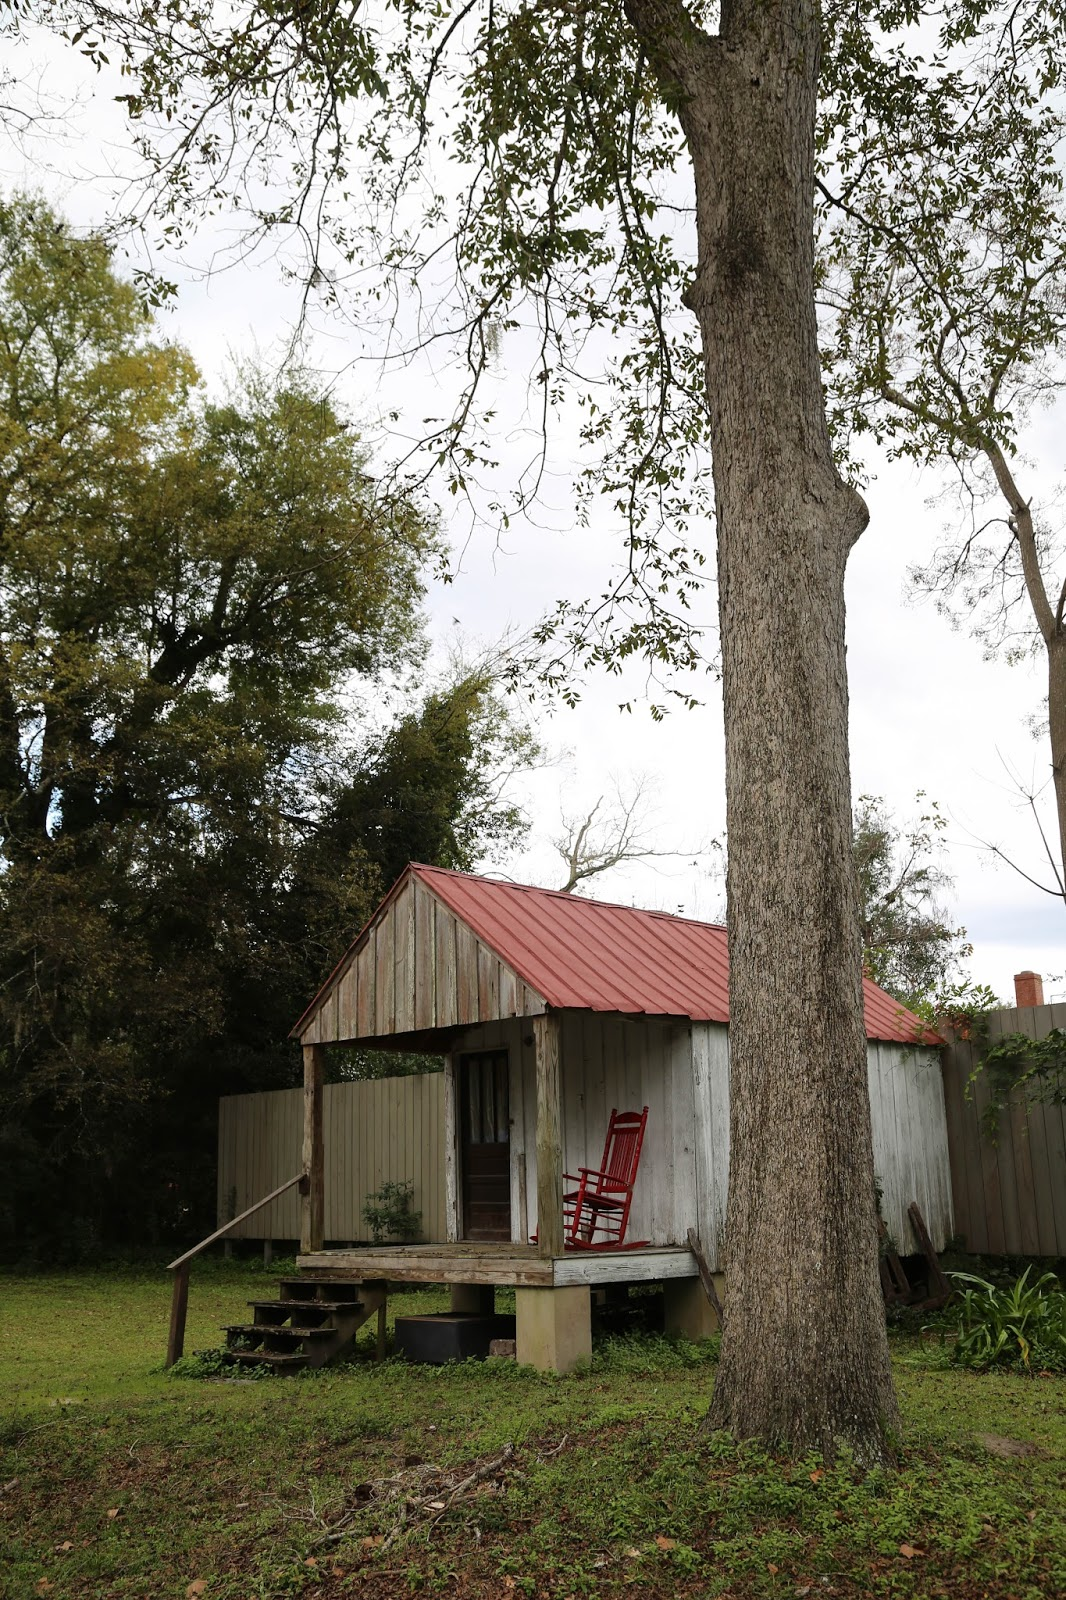 Charleston daily photo teeny tiny houses of the lowcountry for Low country tiny house show